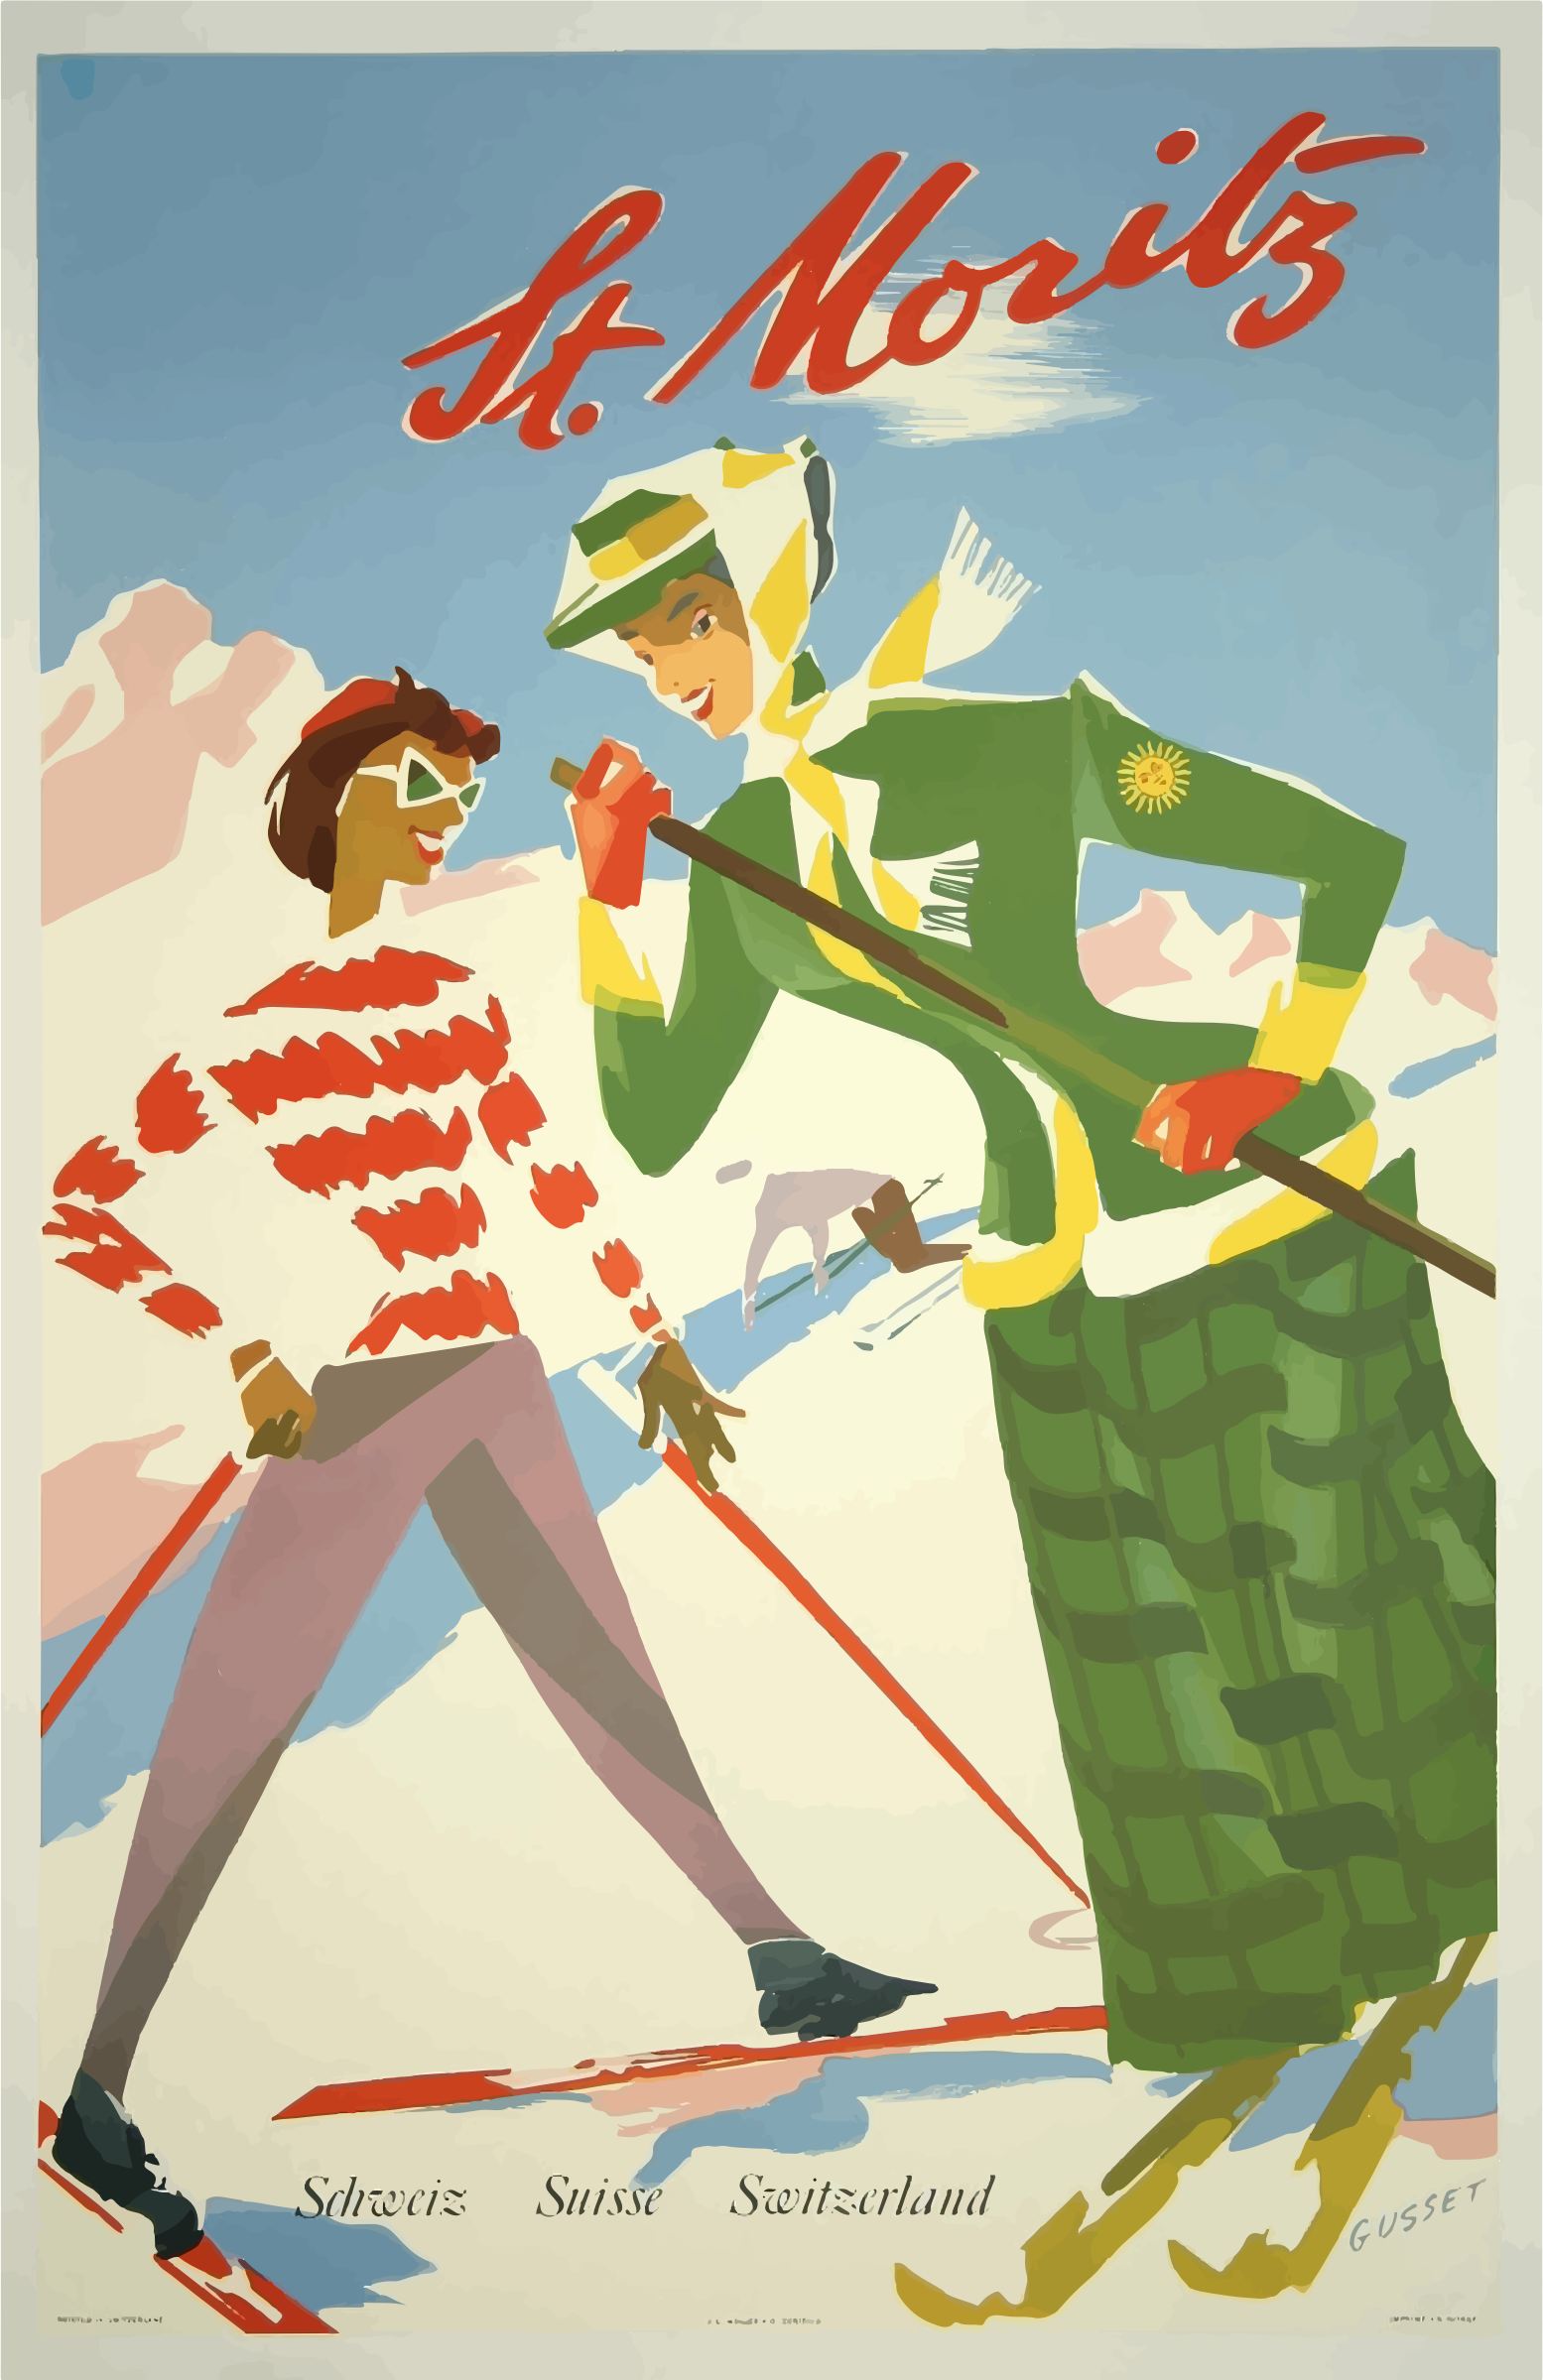 Vintage Travel Poster St Moritz Switzerland by GDJ